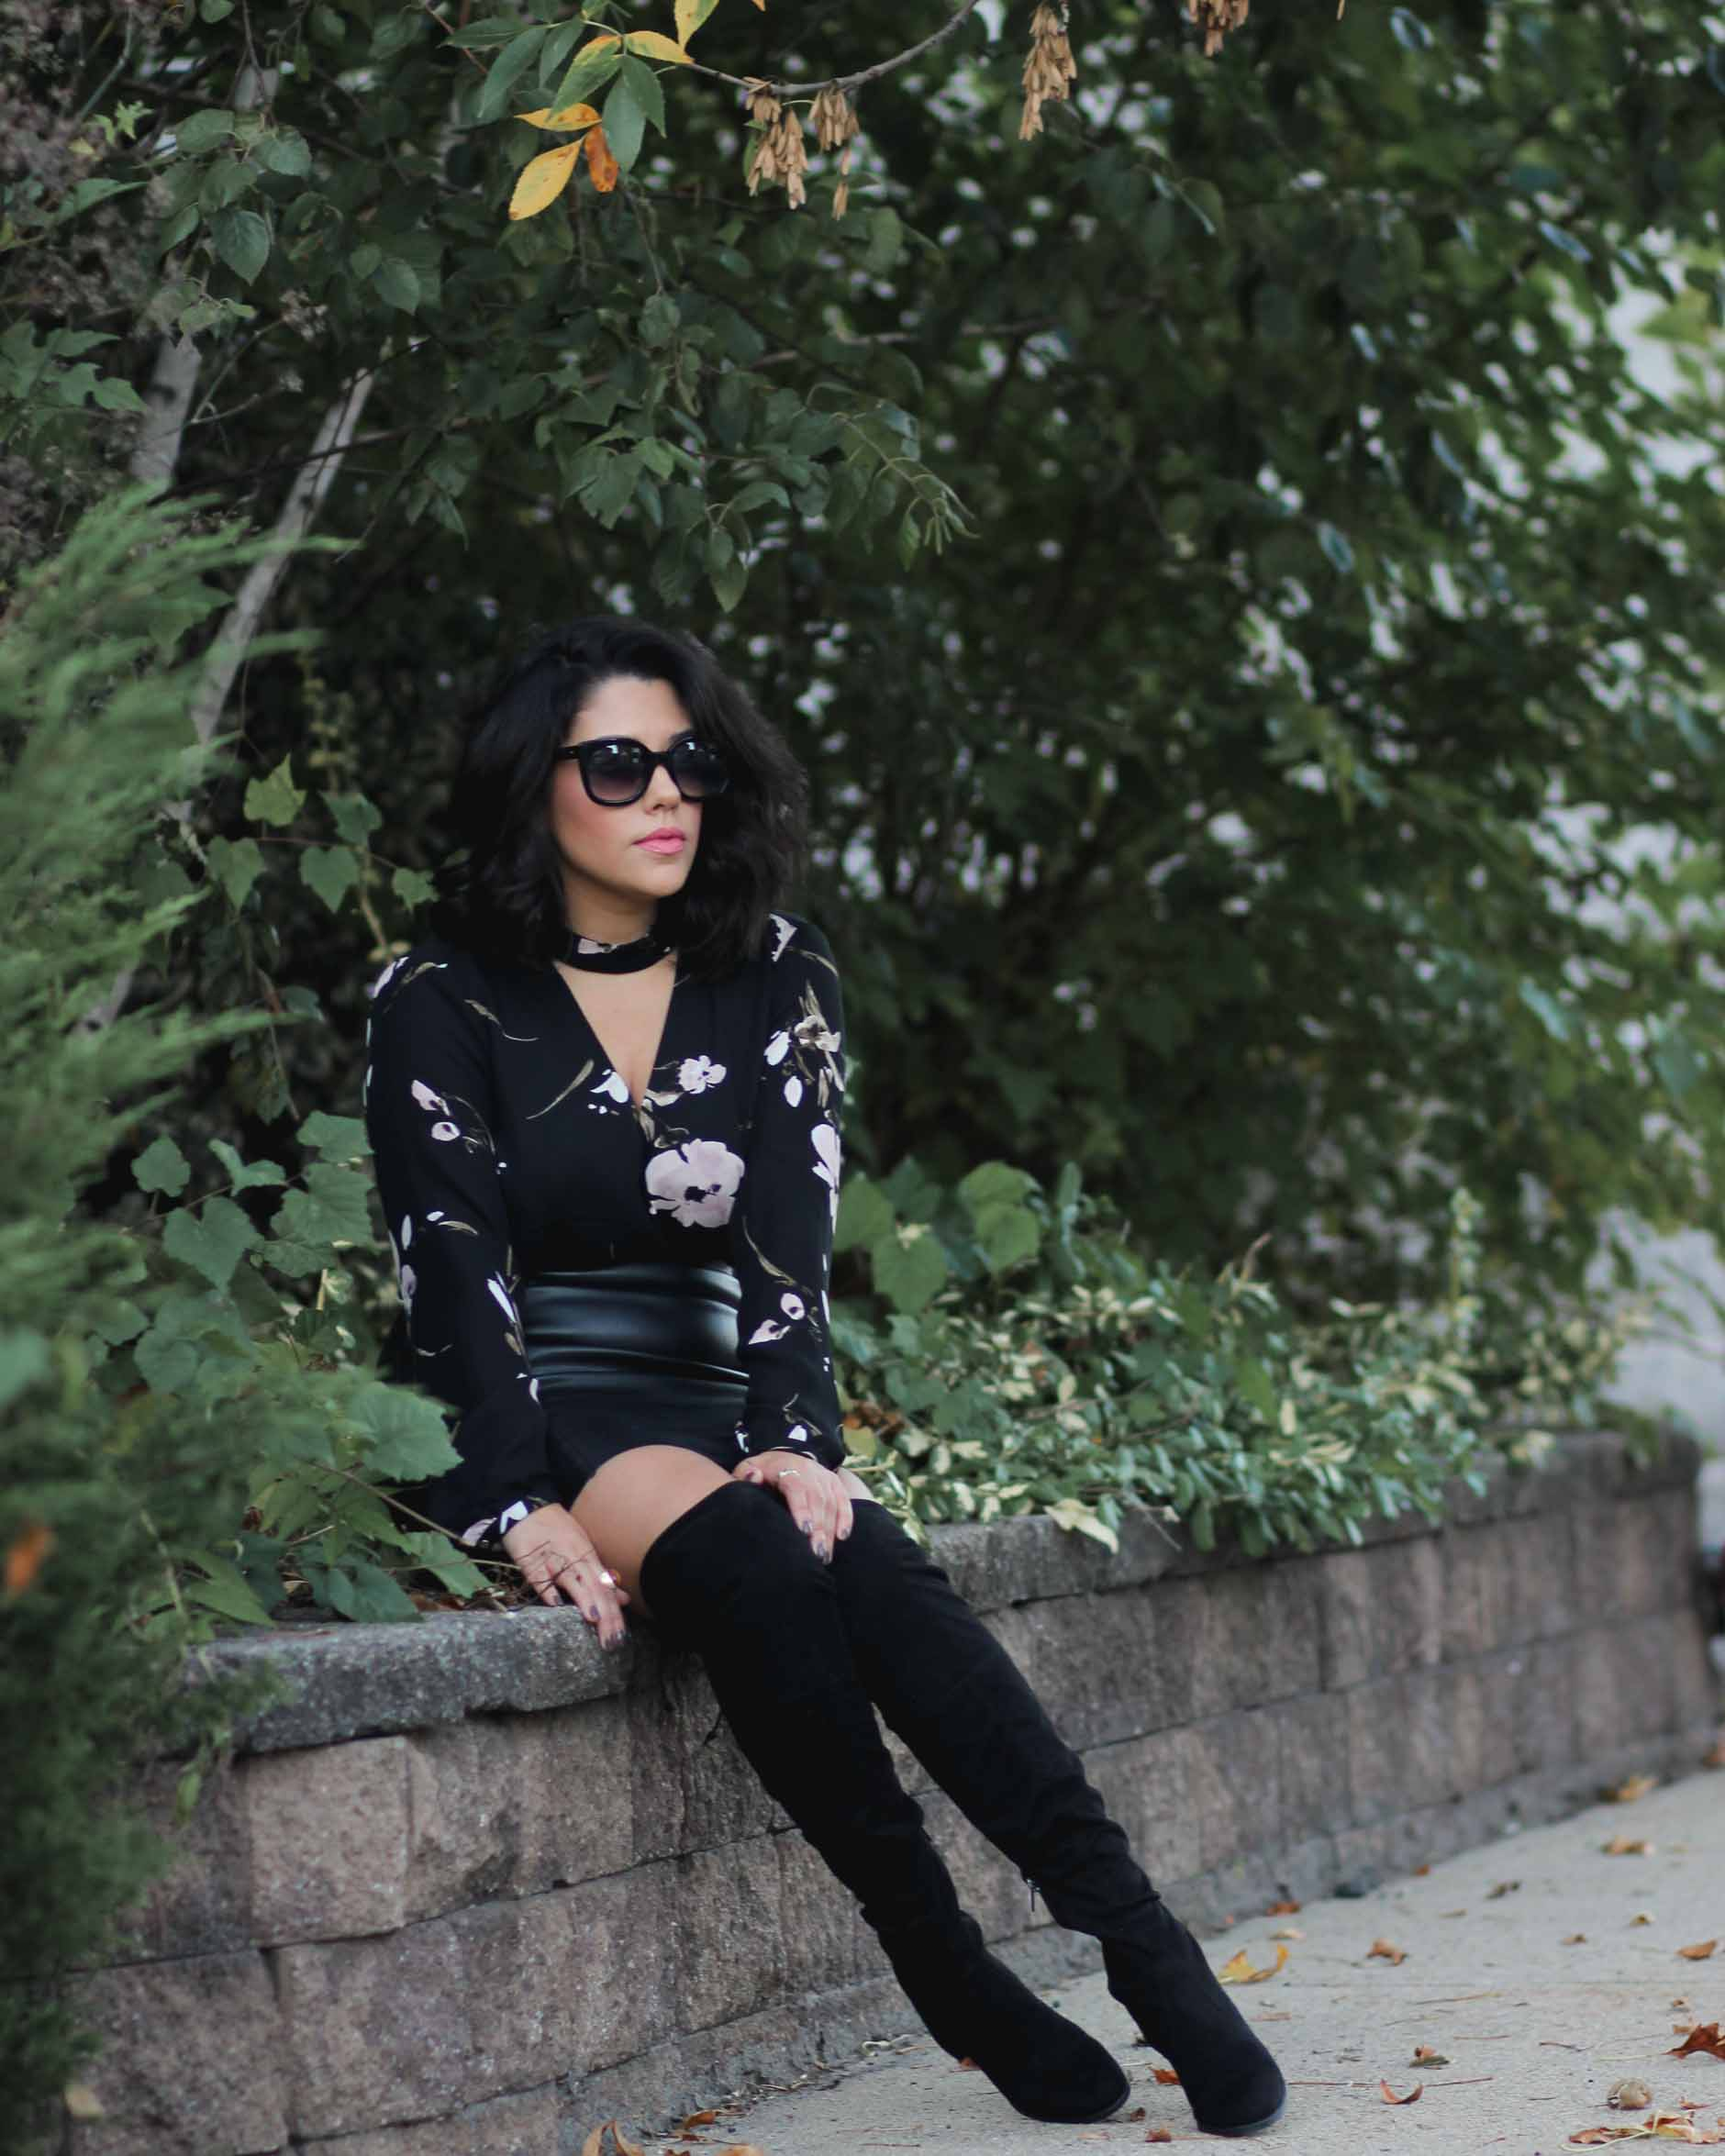 lifestyle blogger naty michele sitting down in otk boots